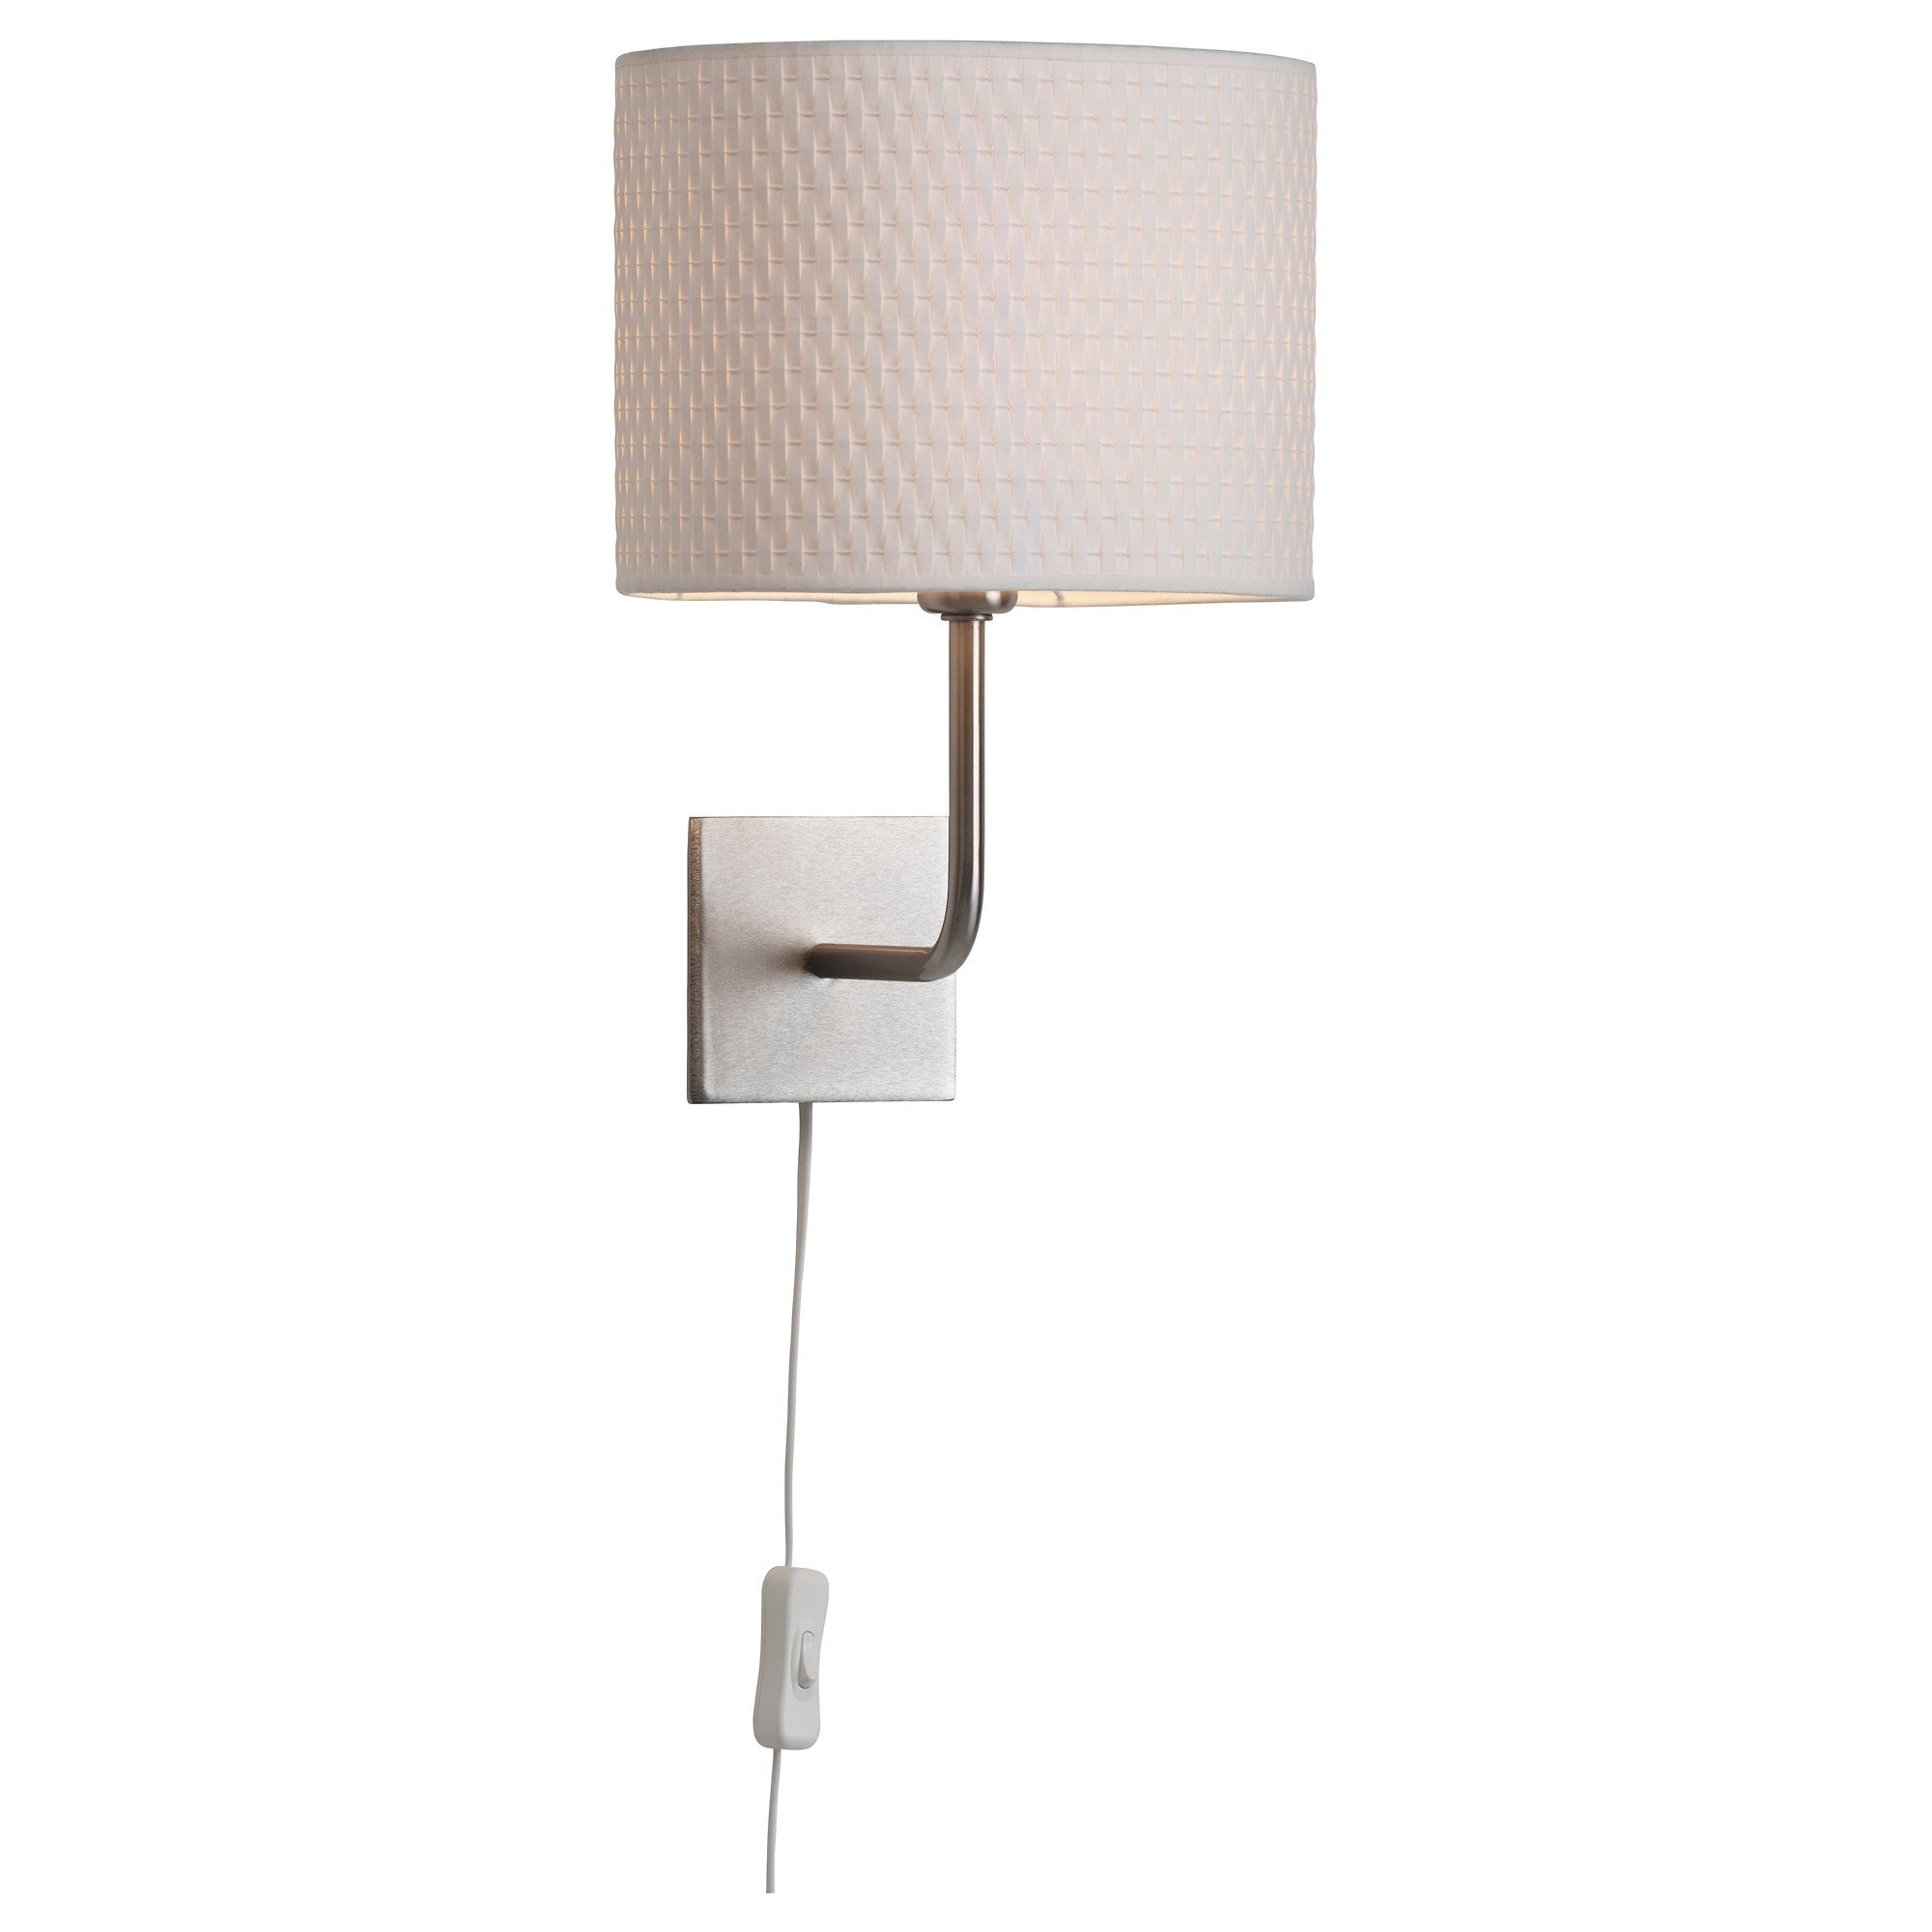 Most Popular Outdoor Wall Lights At Ikea Intended For Aläng Wall Lamp With Led Bulb – Ikea (View 4 of 20)